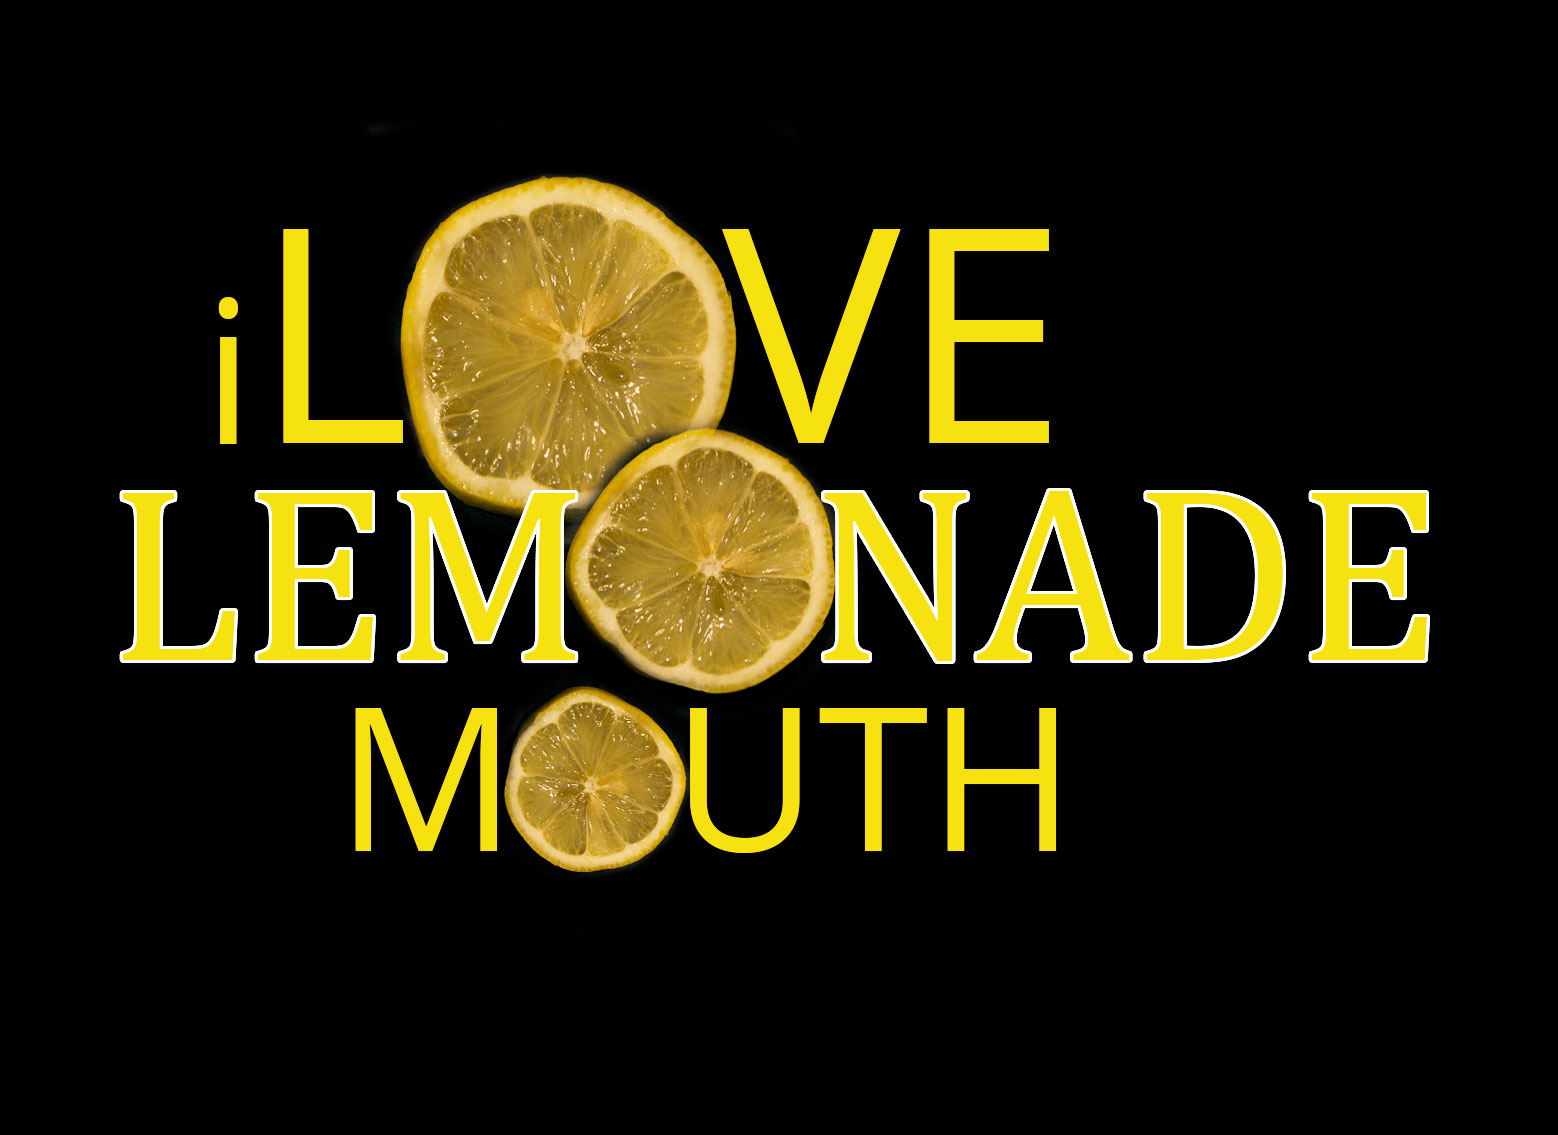 I Love Lemonade Mouth